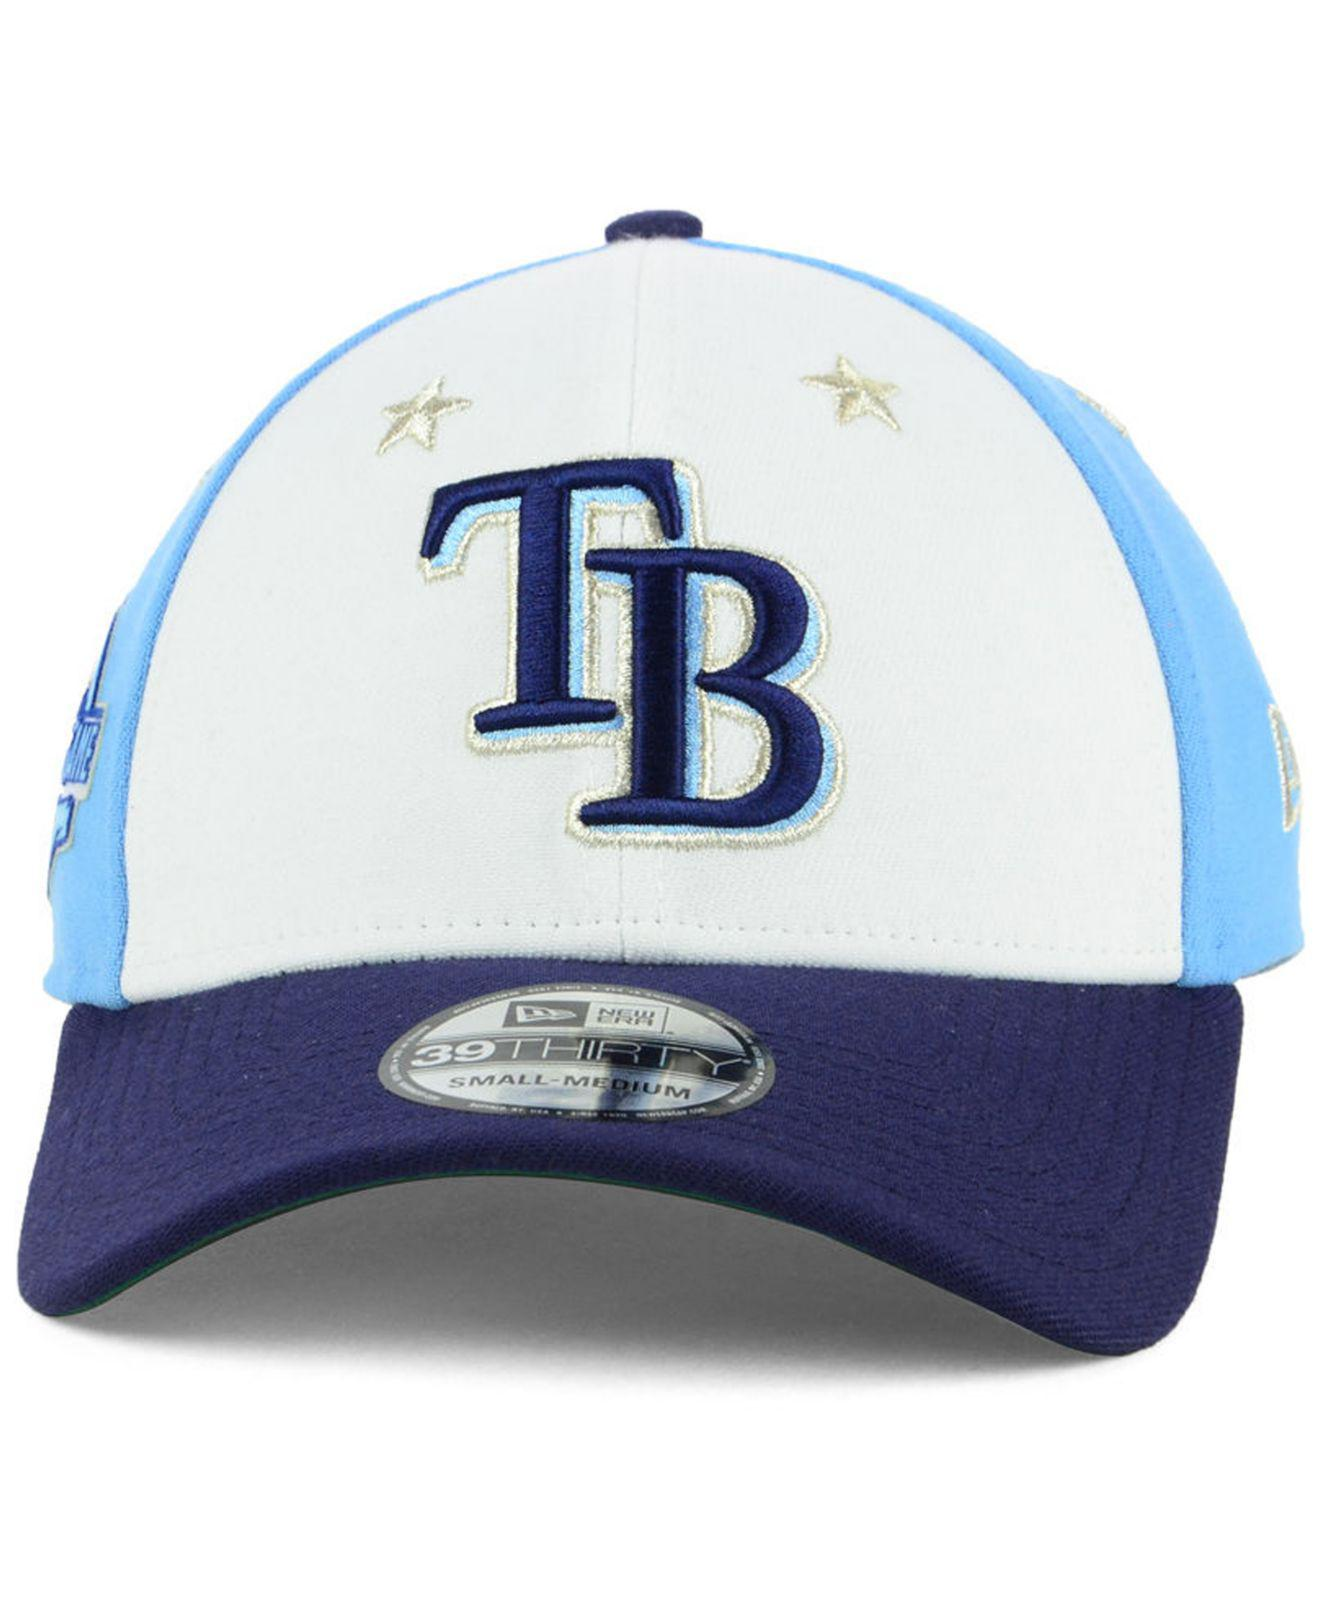 the best attitude d5b10 f71bd ... cheap lyst ktz tampa bay rays all star game 39thirty stretch fitted cap  2018 in blue